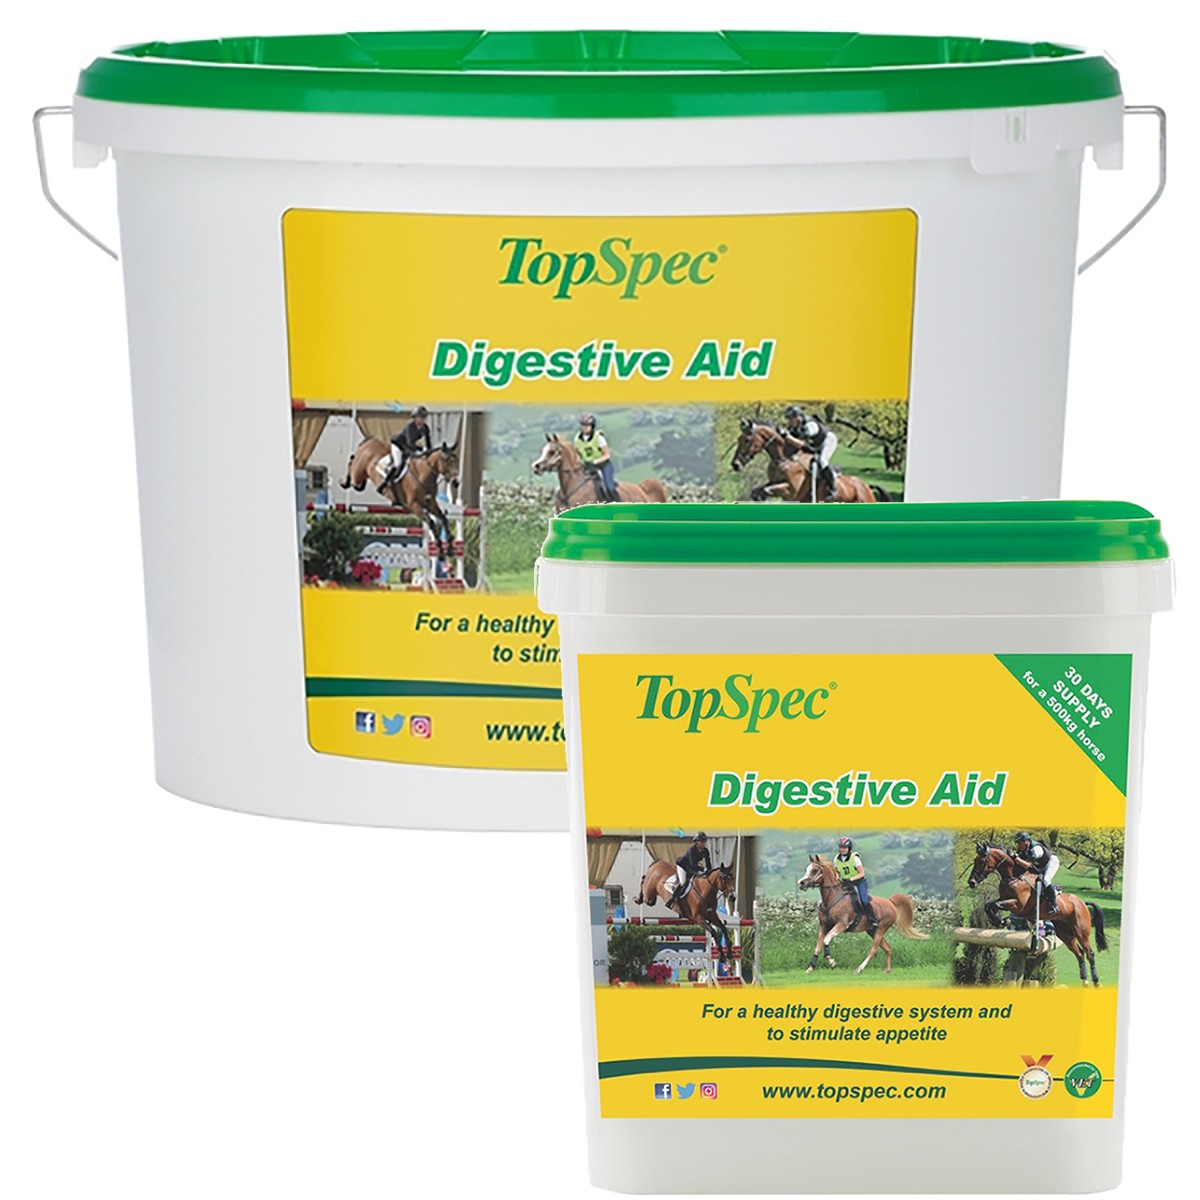 Topspec Digestive Aid Supplement